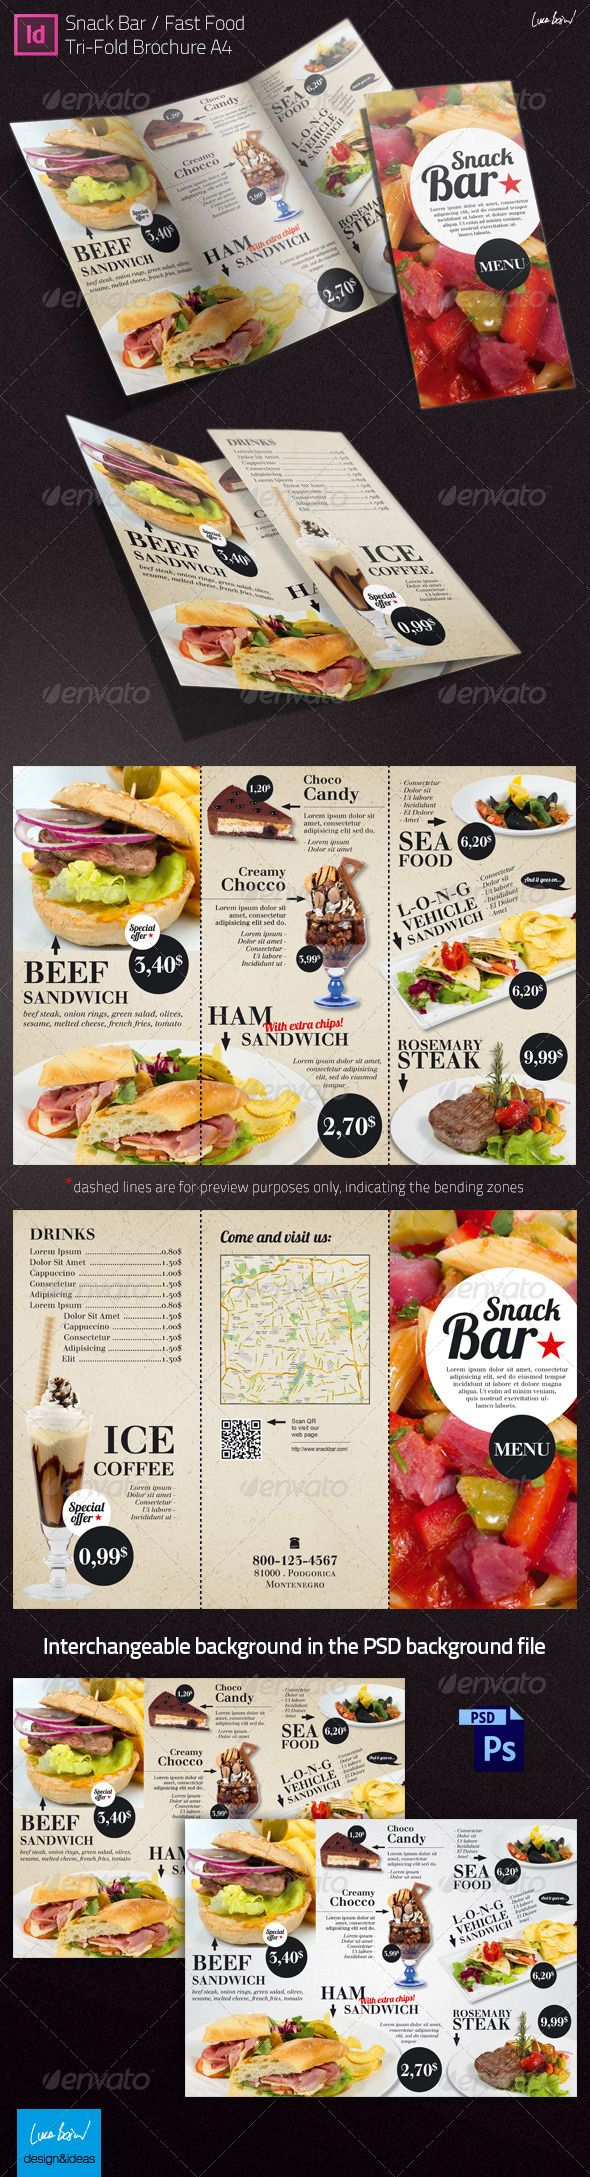 Tri-fold Brochure: Snack Bar Menu